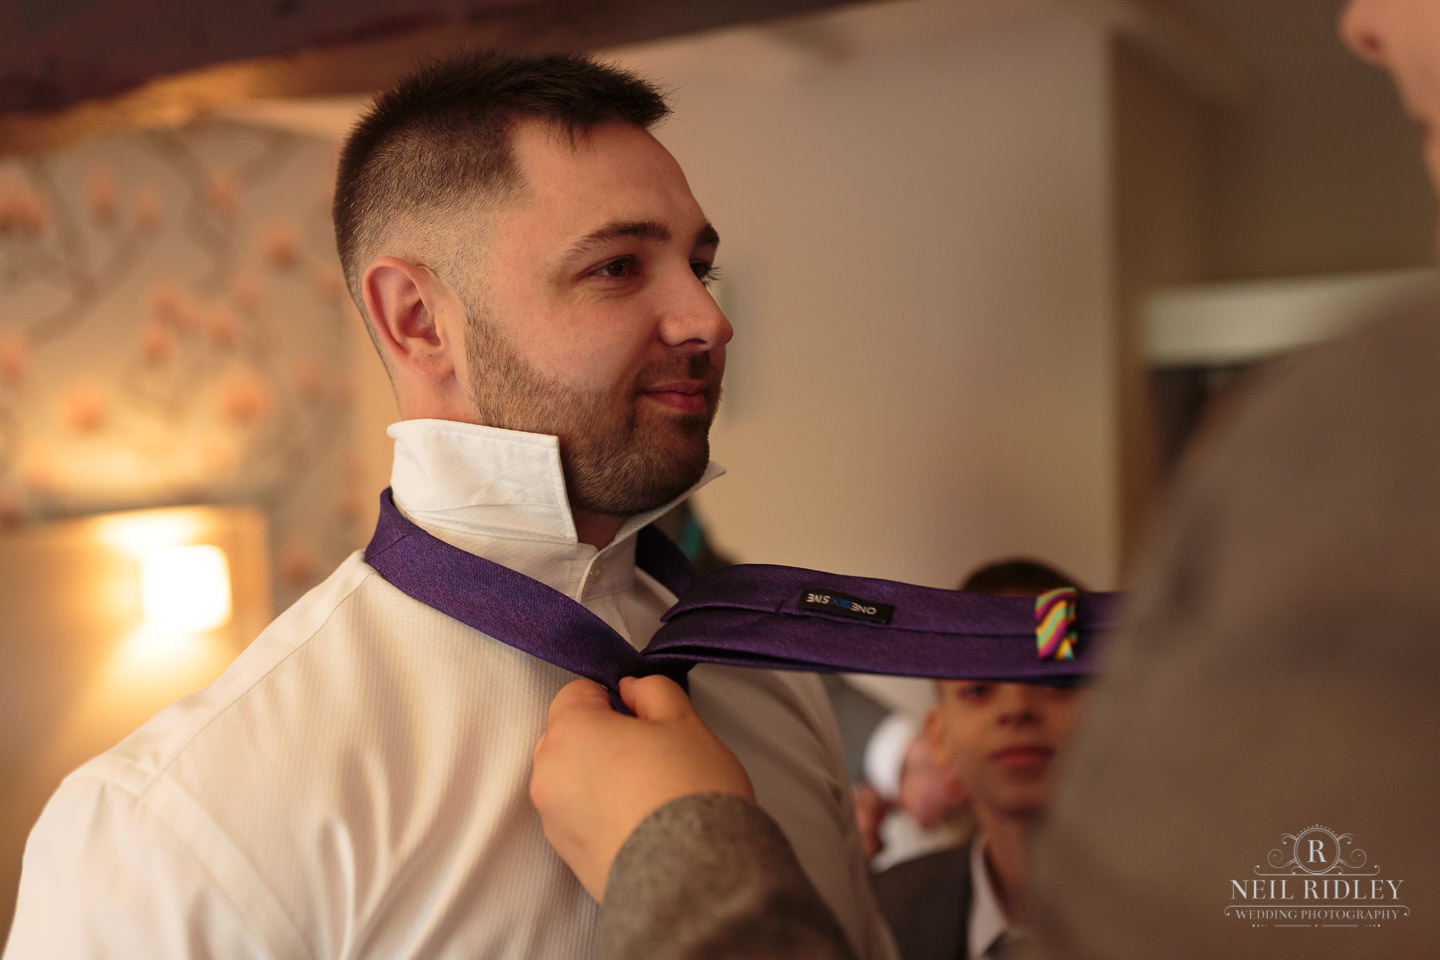 Groom having his tie tied during Groom Prep at The Mill at Conder Green